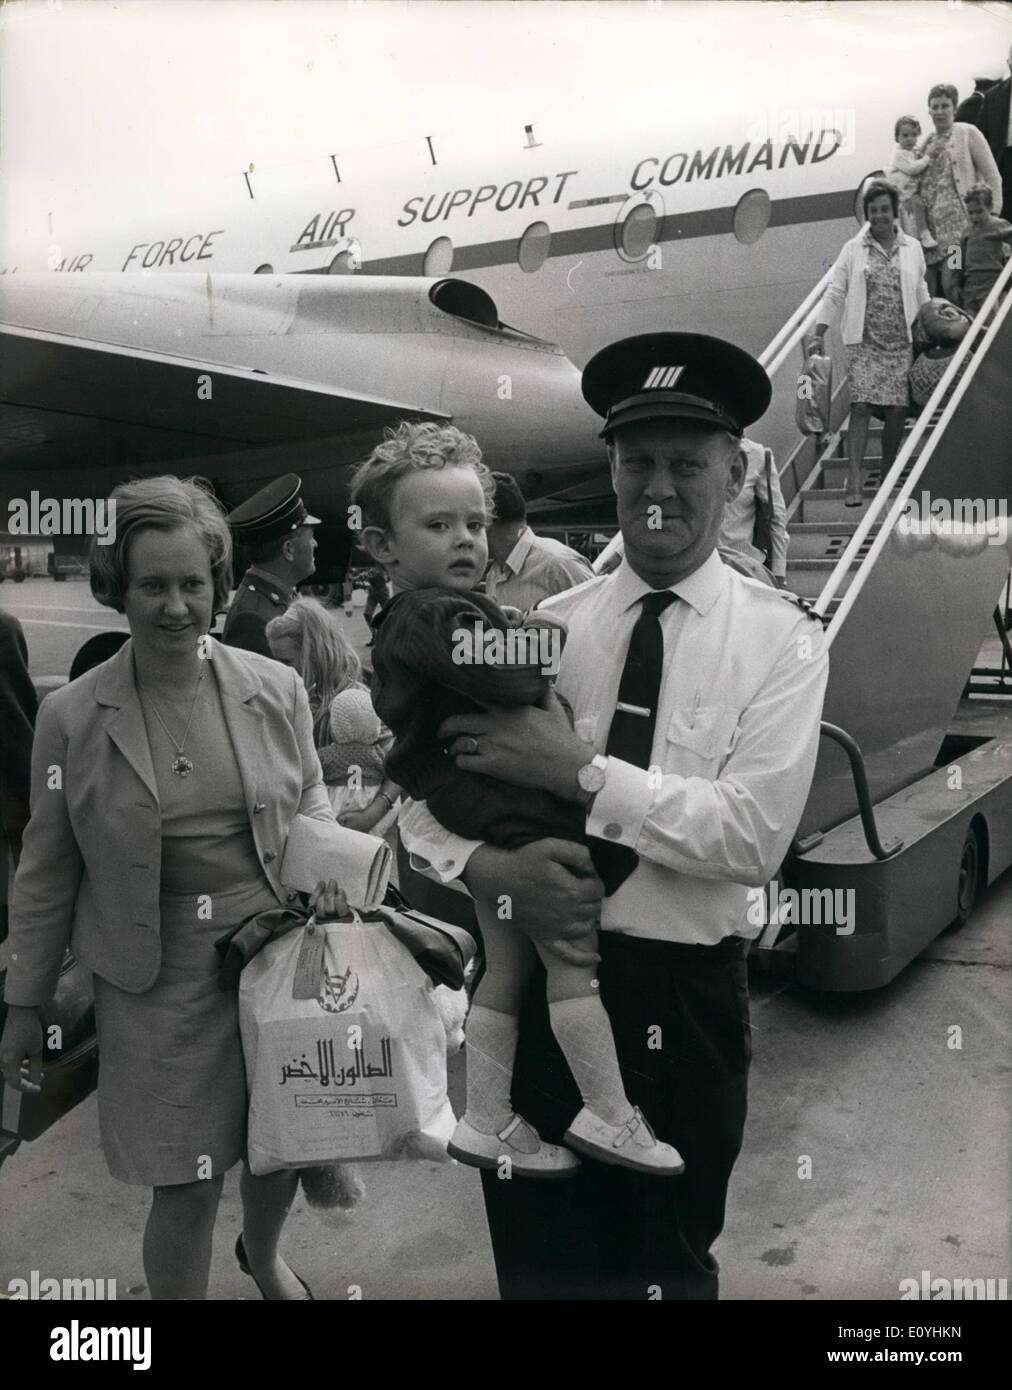 Jun. 06, 1970 - Britons Flown Home From Jordan's Tense Capital: Photo Shows Women and children who were evacuated Stock Photo